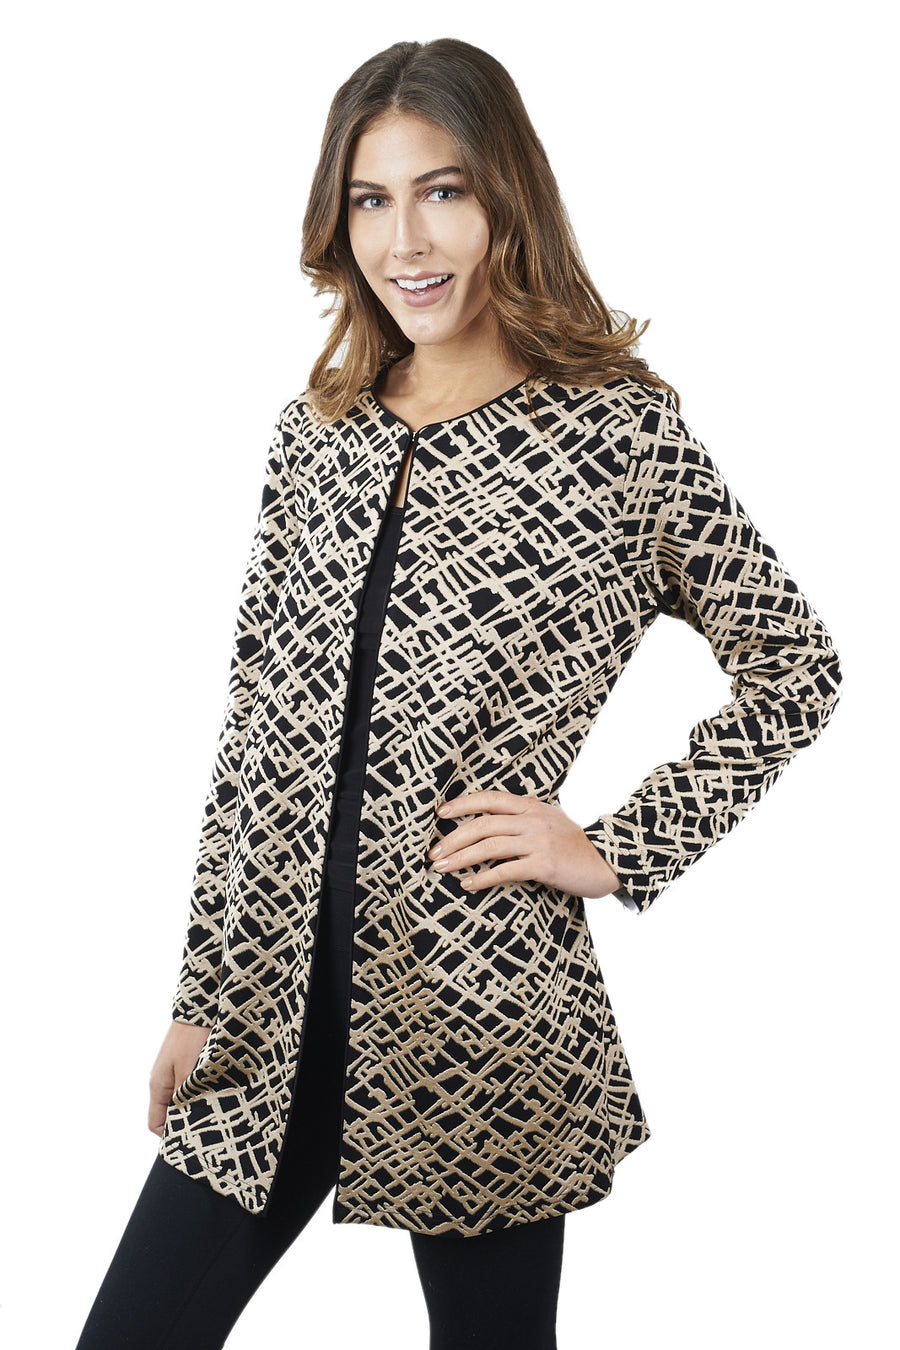 Patterned Jacket with hook closure